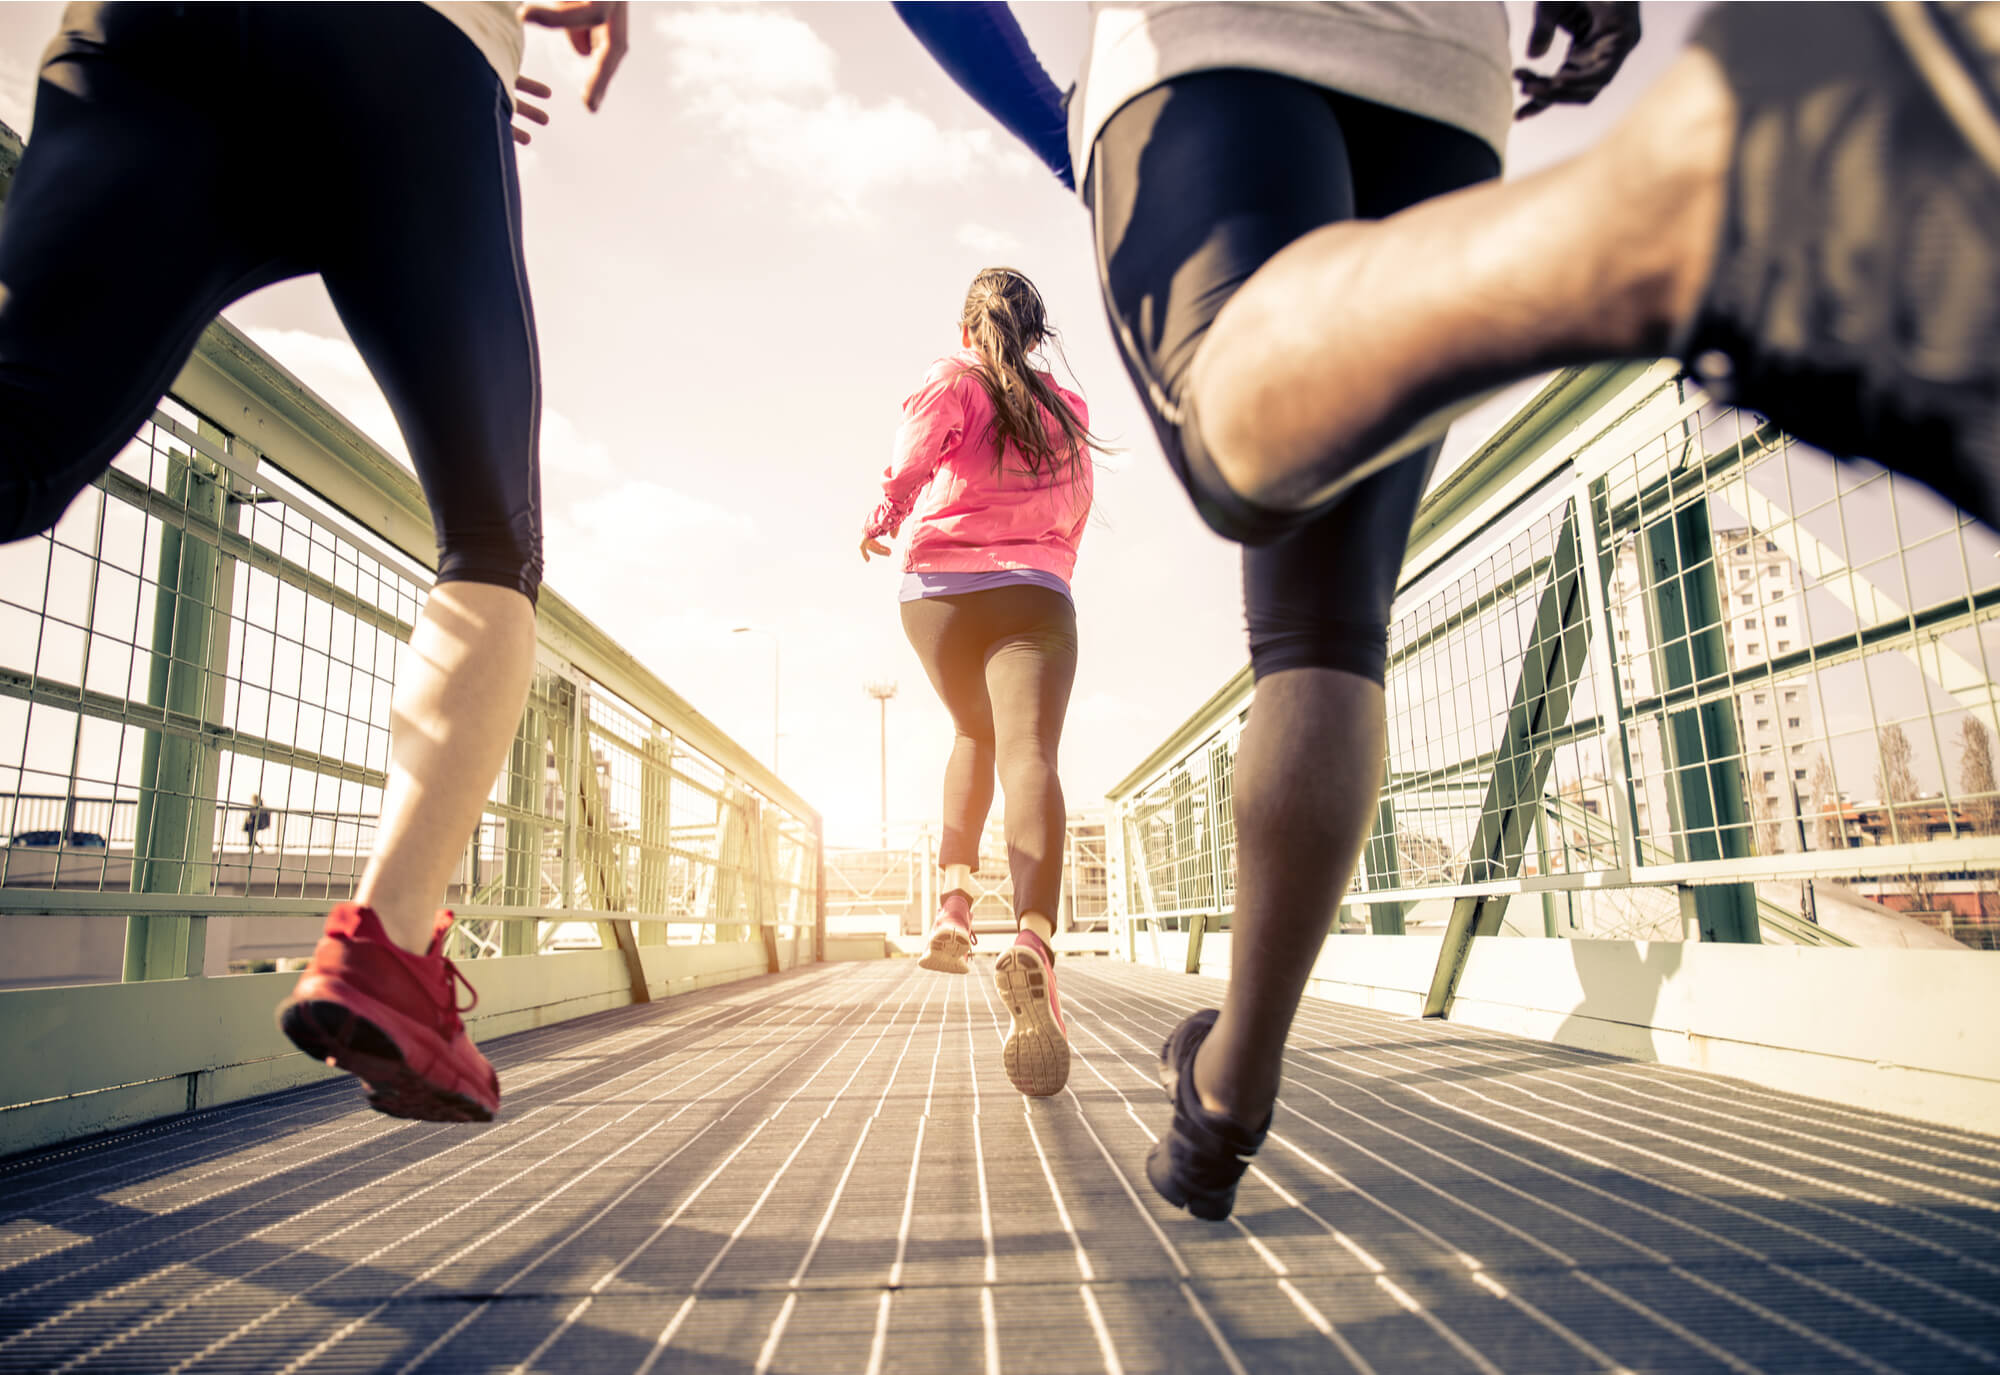 Which sport should I choose to lose weight on my thighs?